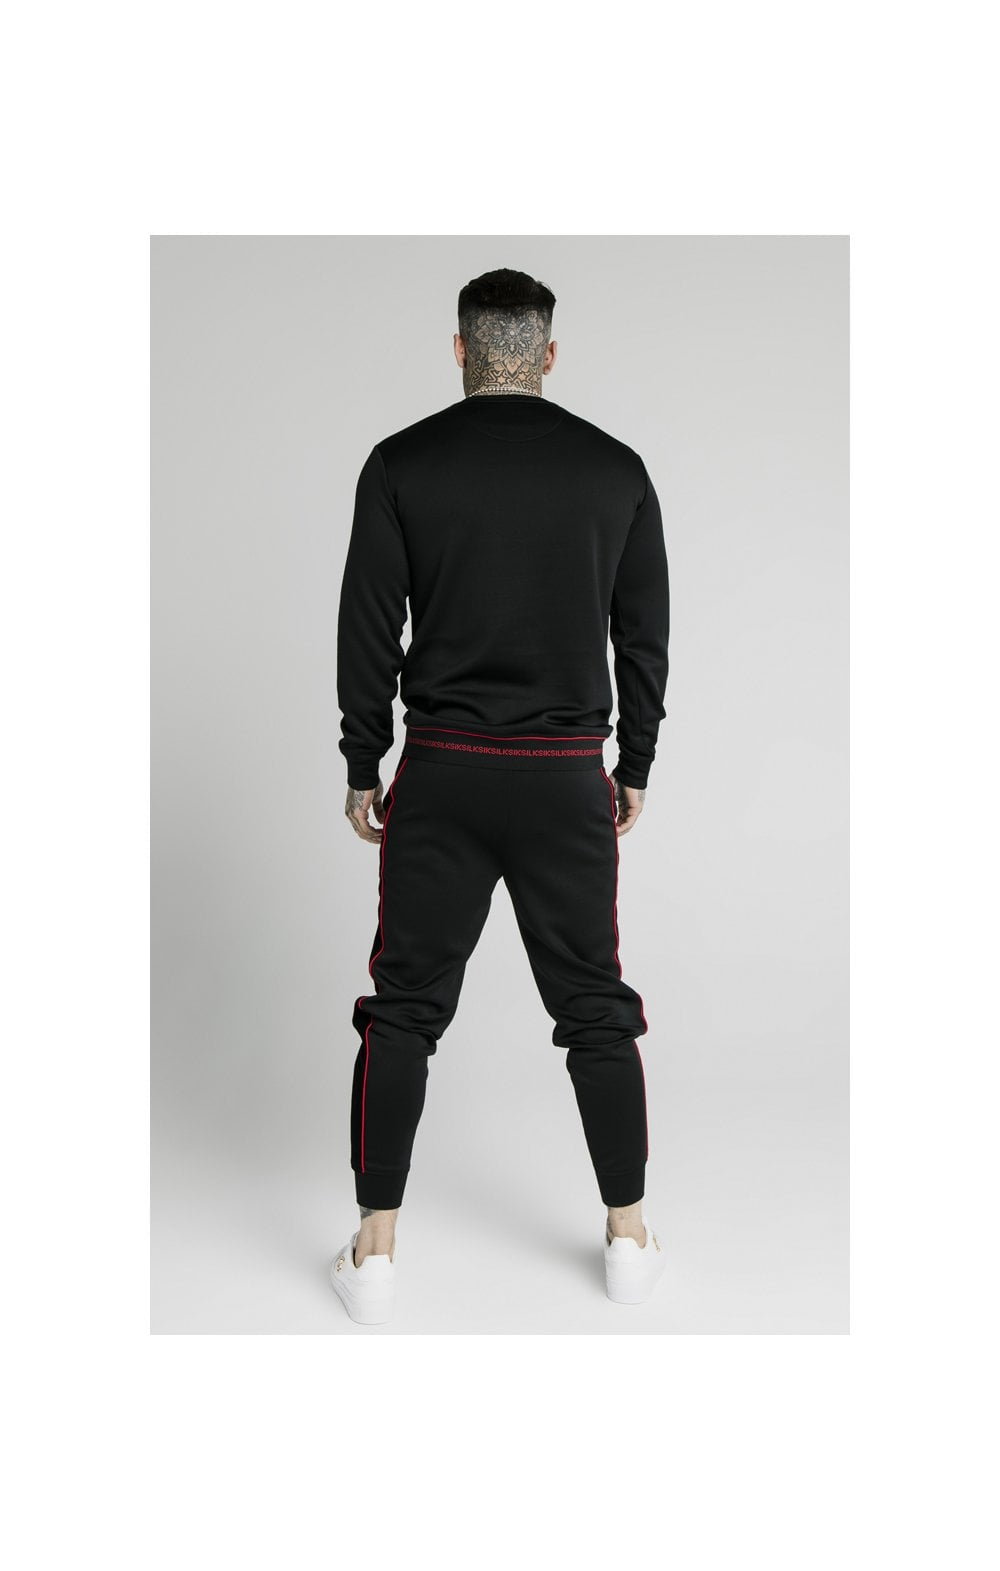 SikSilk Imperial Crew Neck Sweater - Black (6)